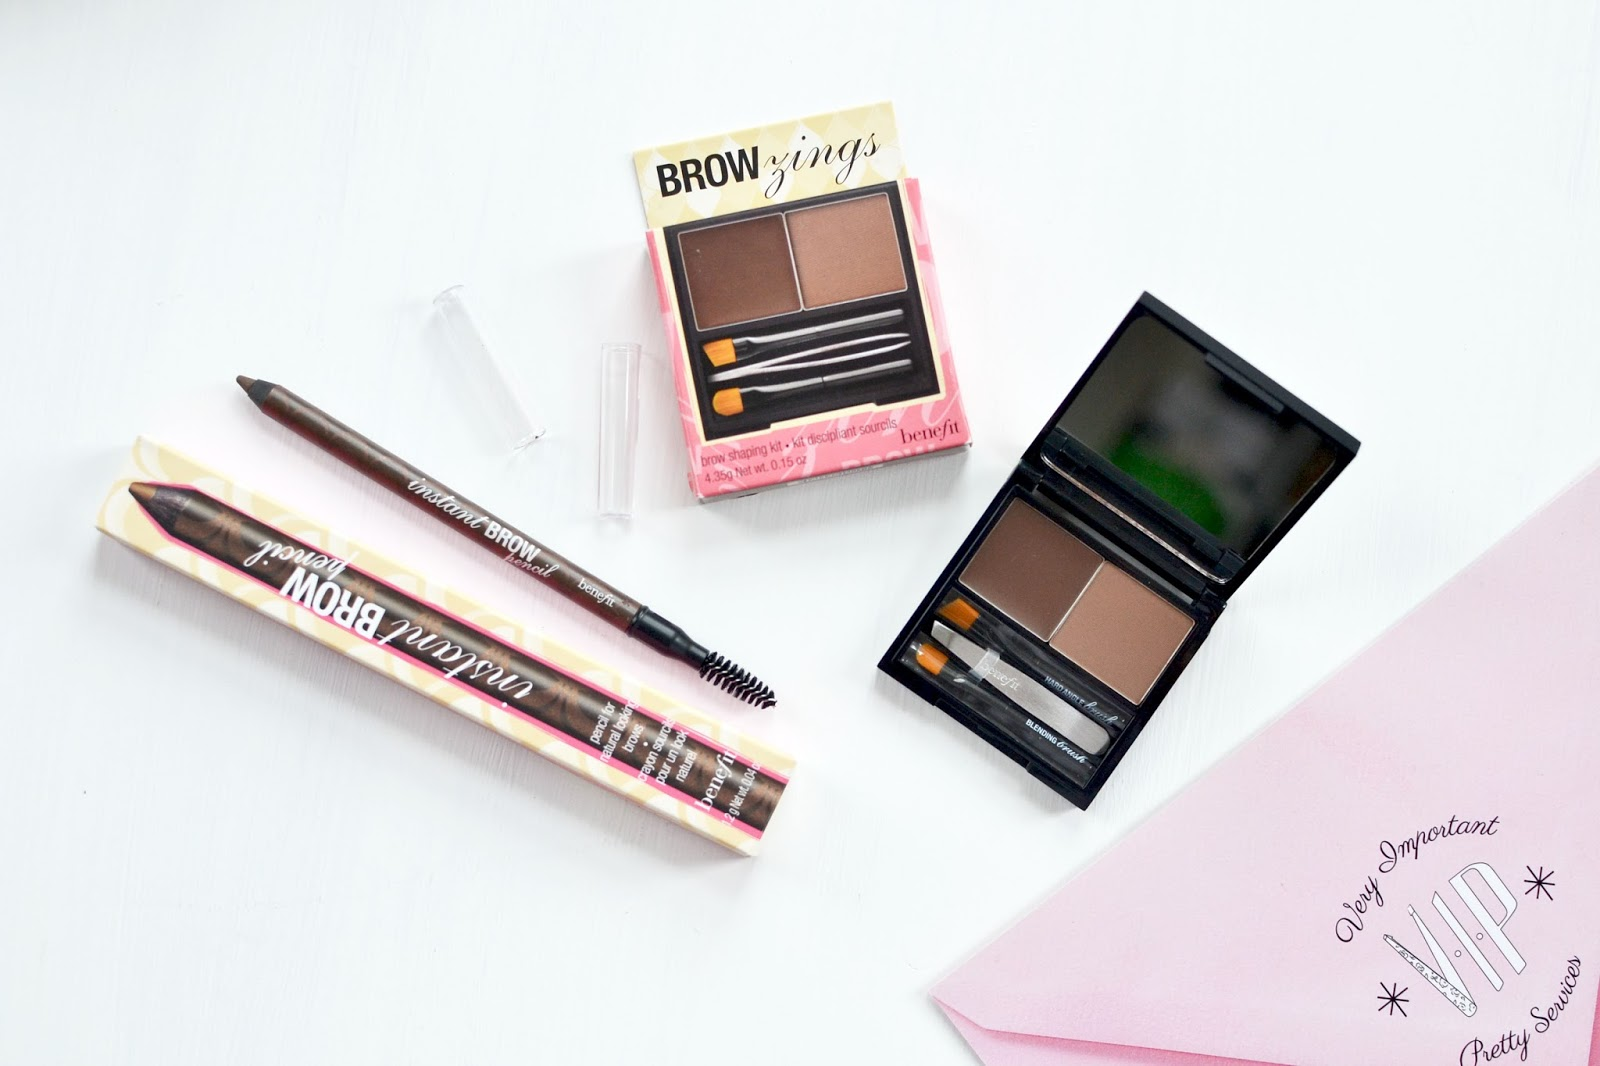 brow zings, benefit brow zings, benefit instant brow pencil